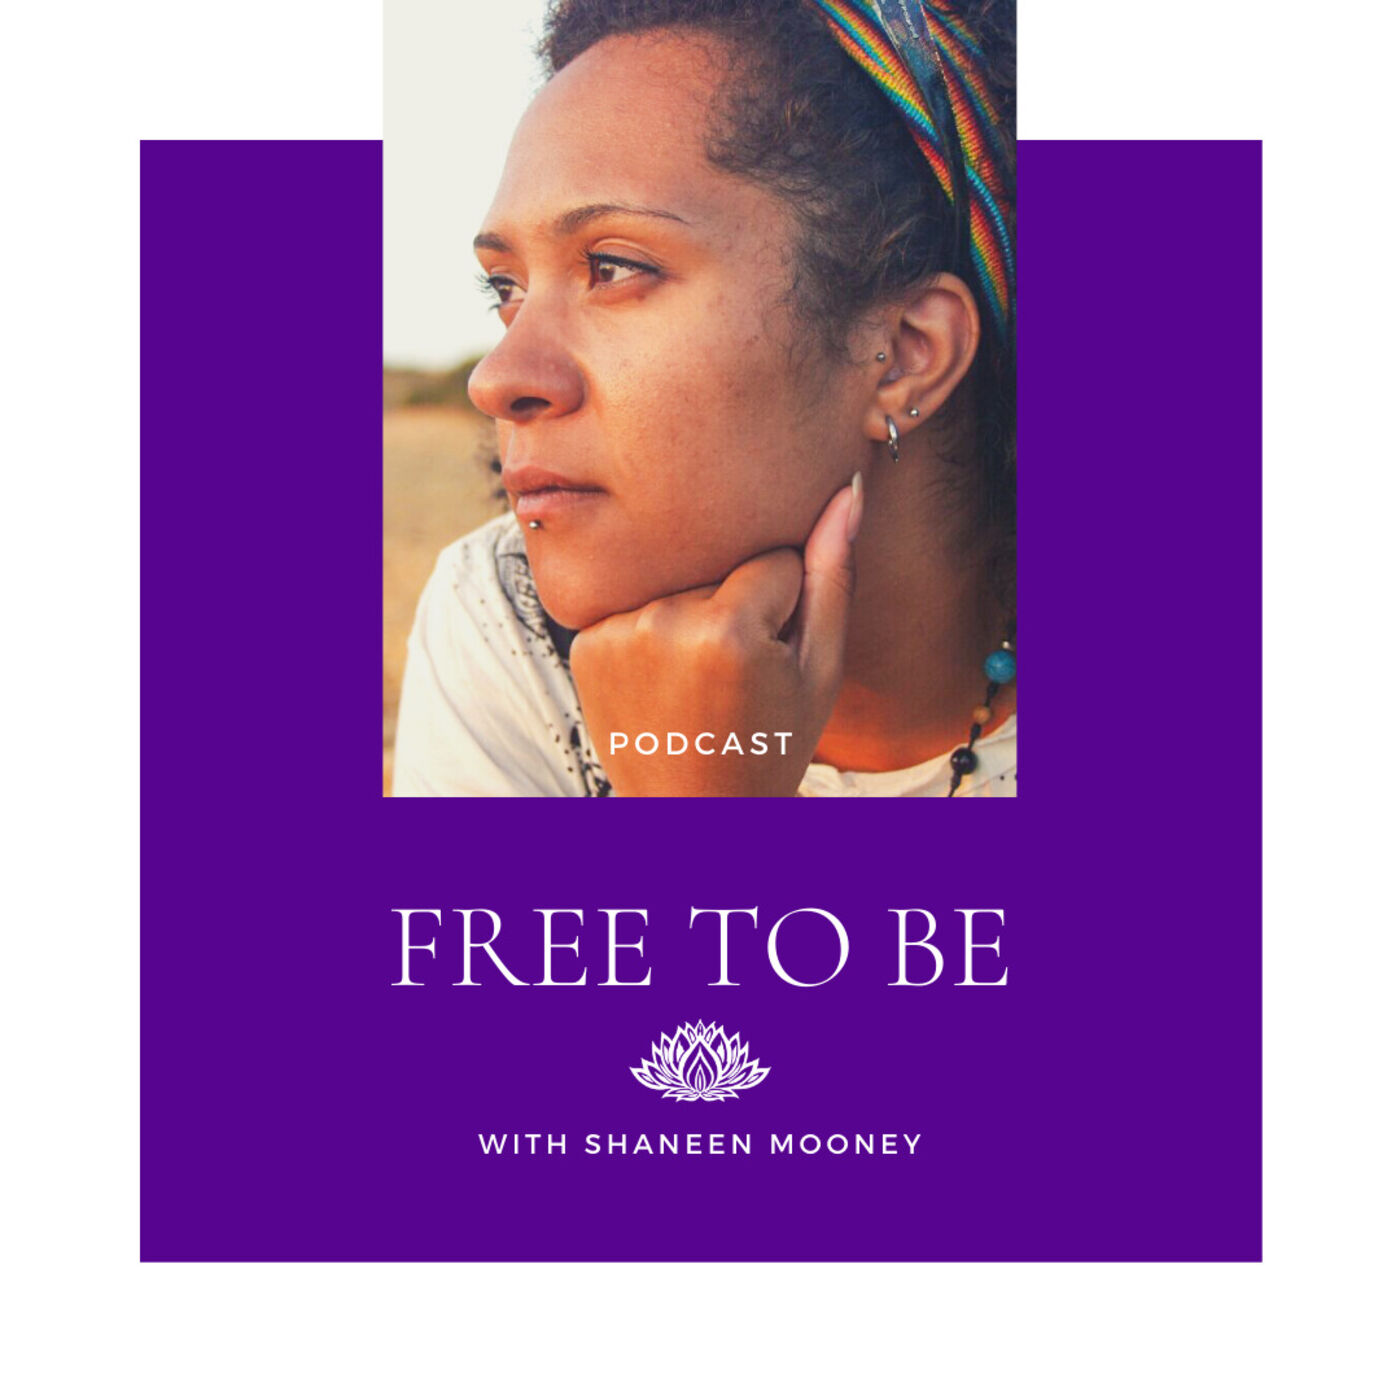 A Soul On Fire - Sara J. Sanderson as guest on 'Free To Be' hosted by Shaneen Mooney